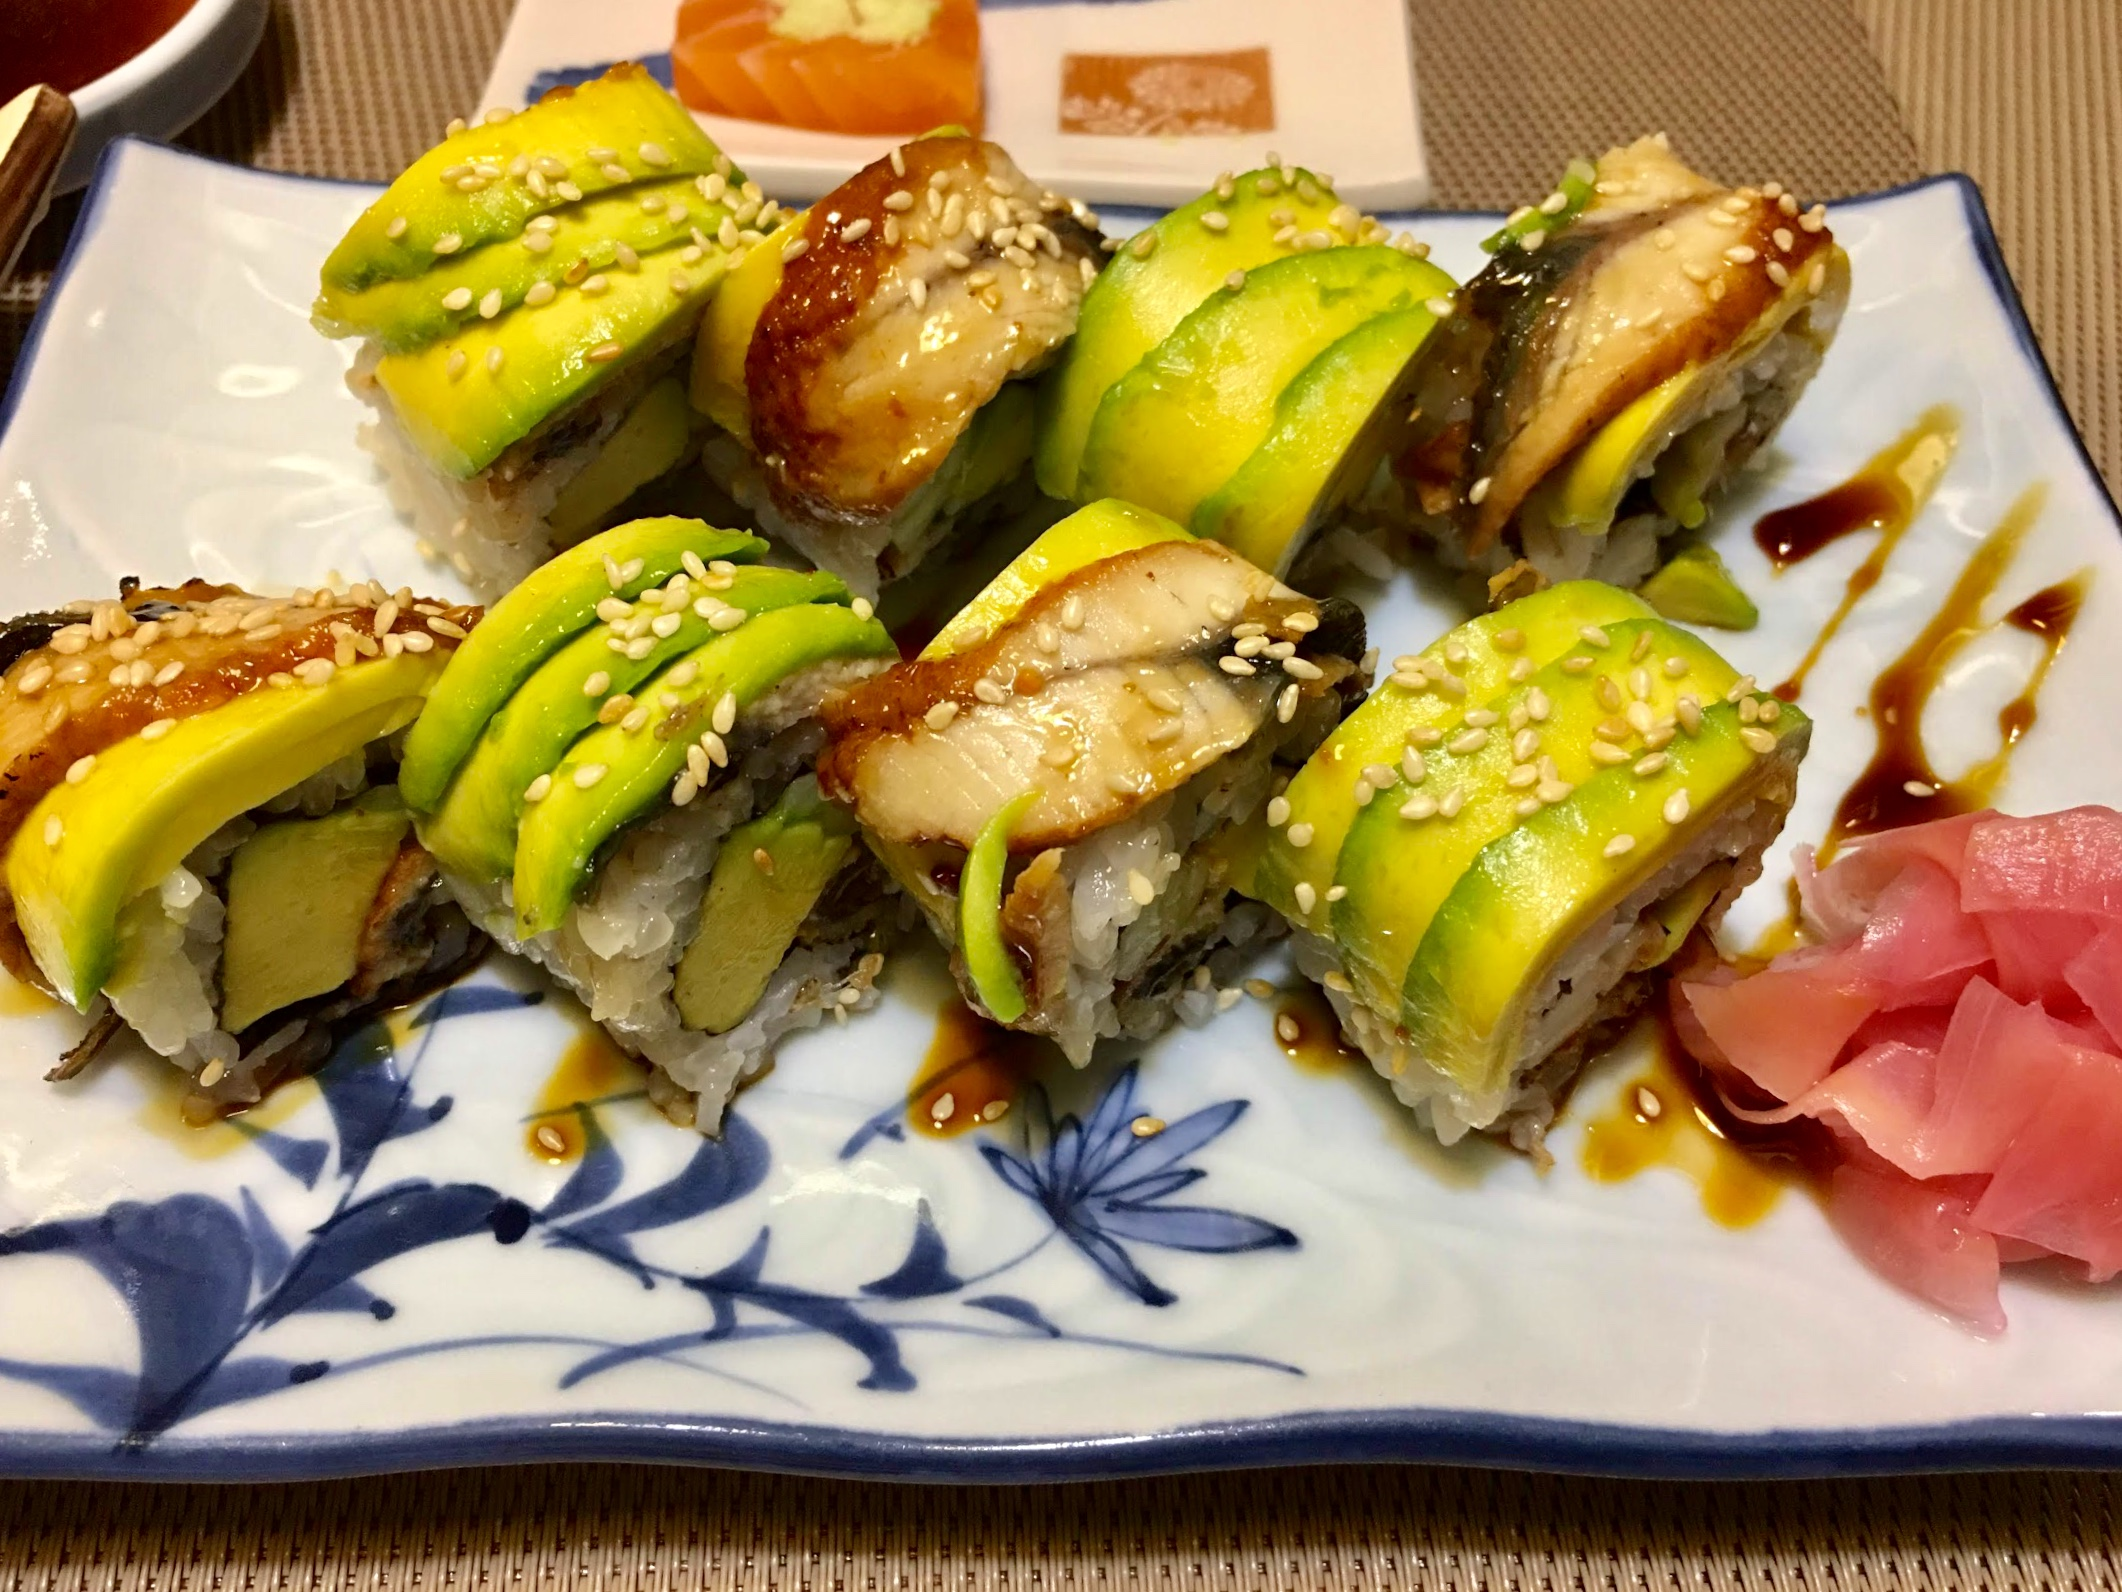 A file photo showing avocados being used in a maki sushi dish at a restaurant in Ho Chi Minh City. Photo: Dong Nguyen/ Tuoi Tre News